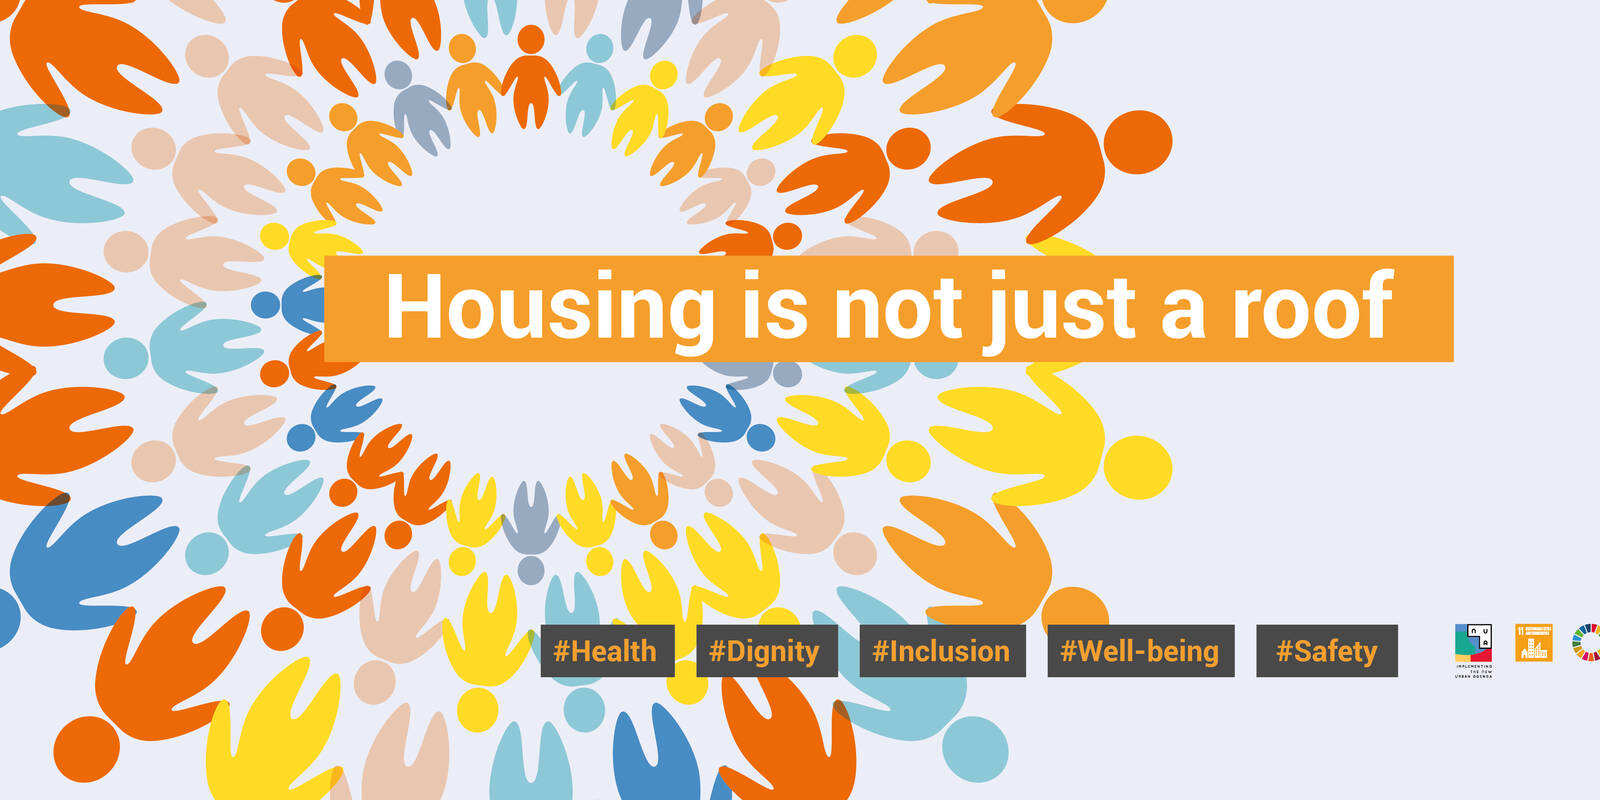 Housing For All Campaign